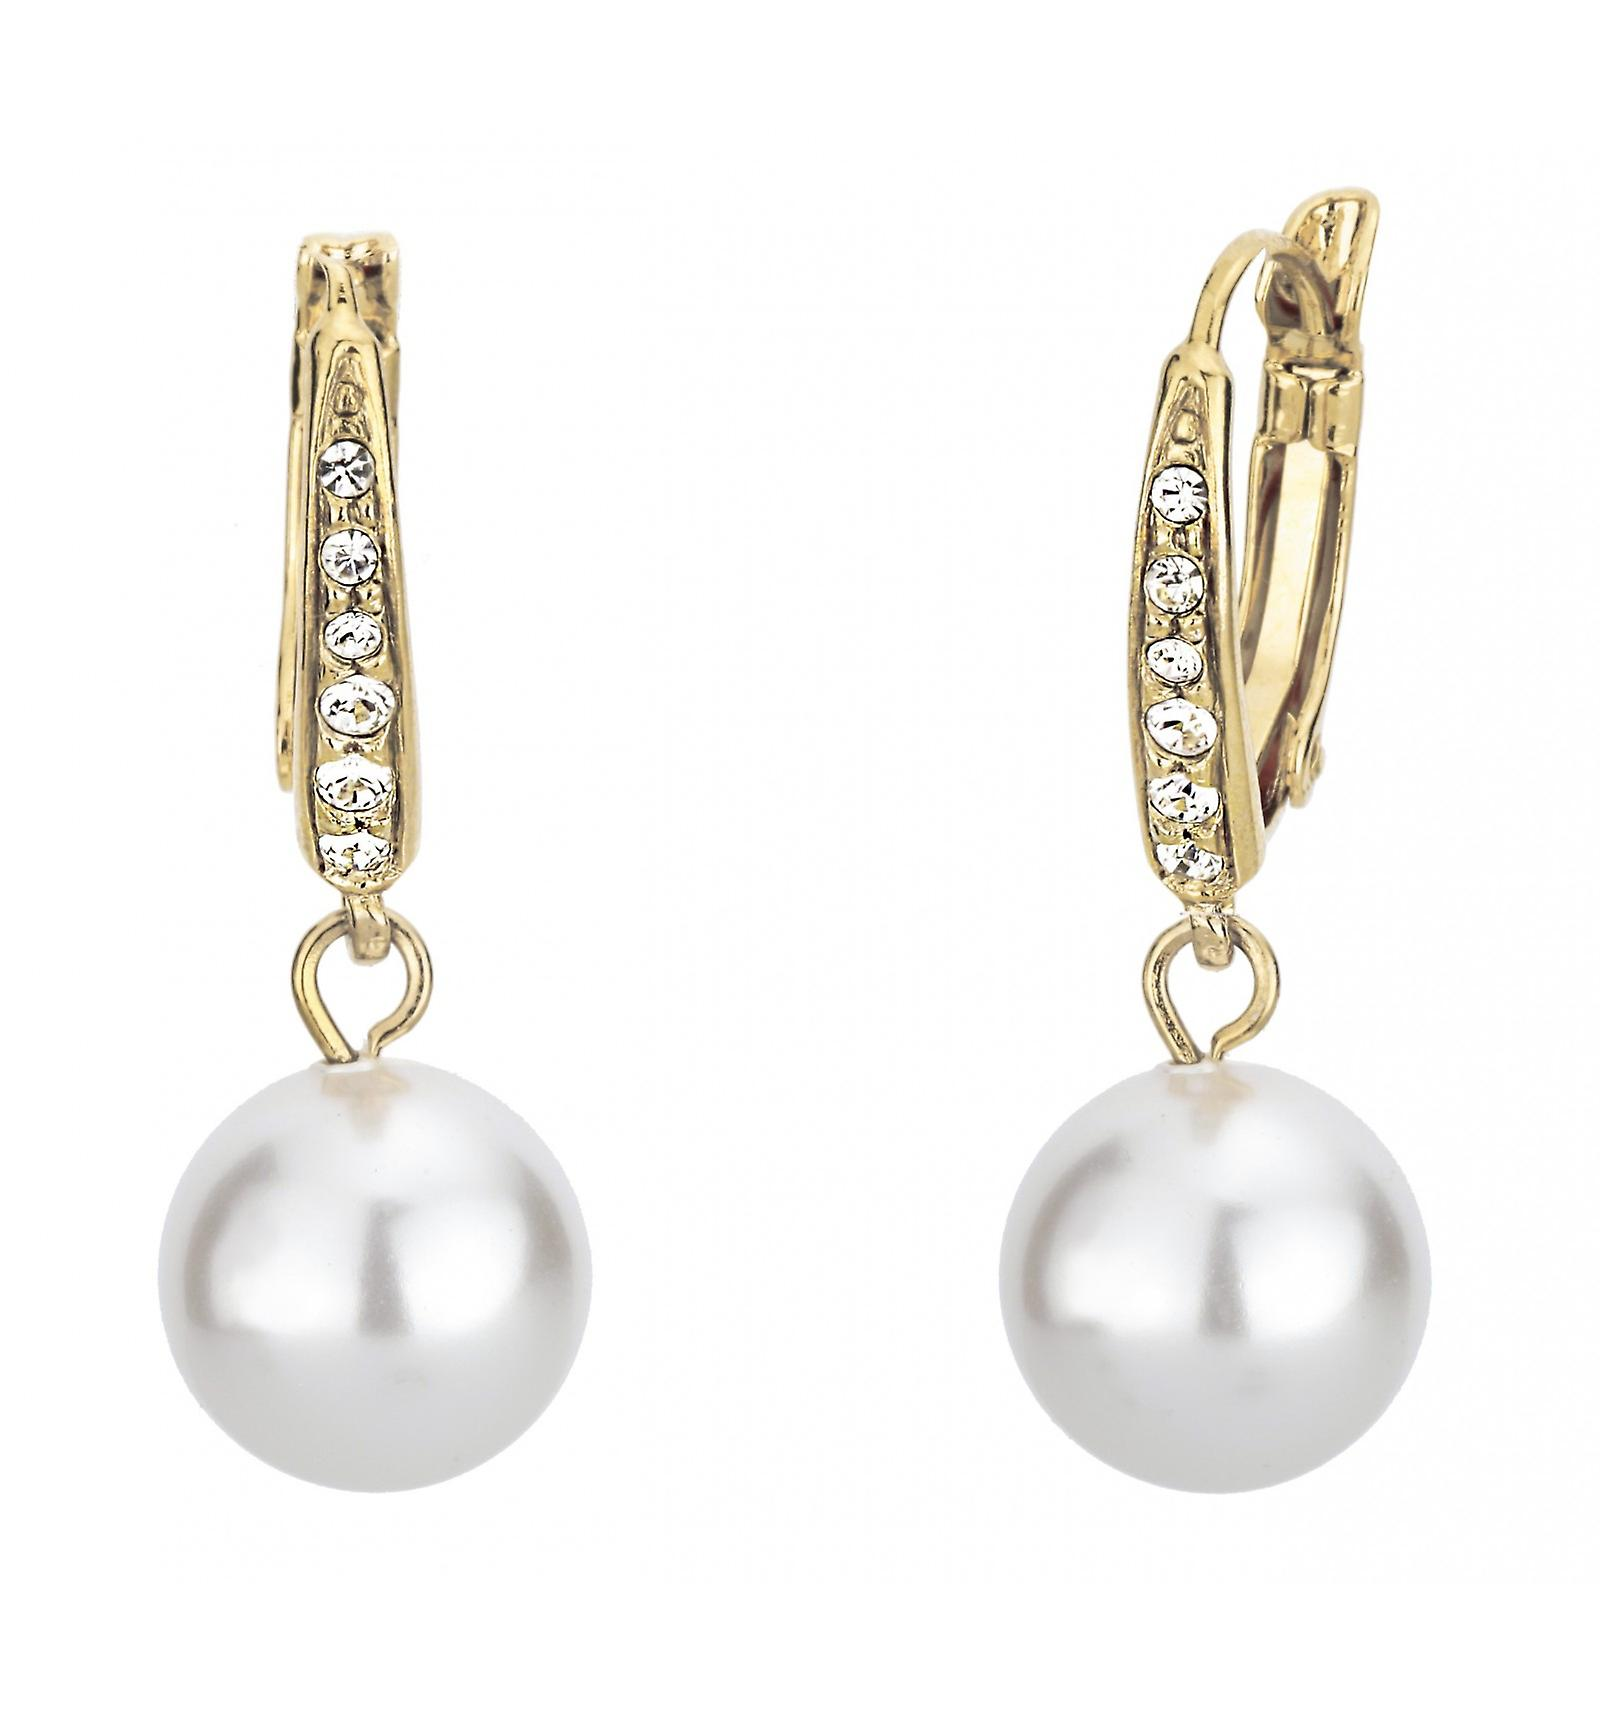 Traveller drop earring - leverback - 10mm white pearl - 22ct gold plated - 114143